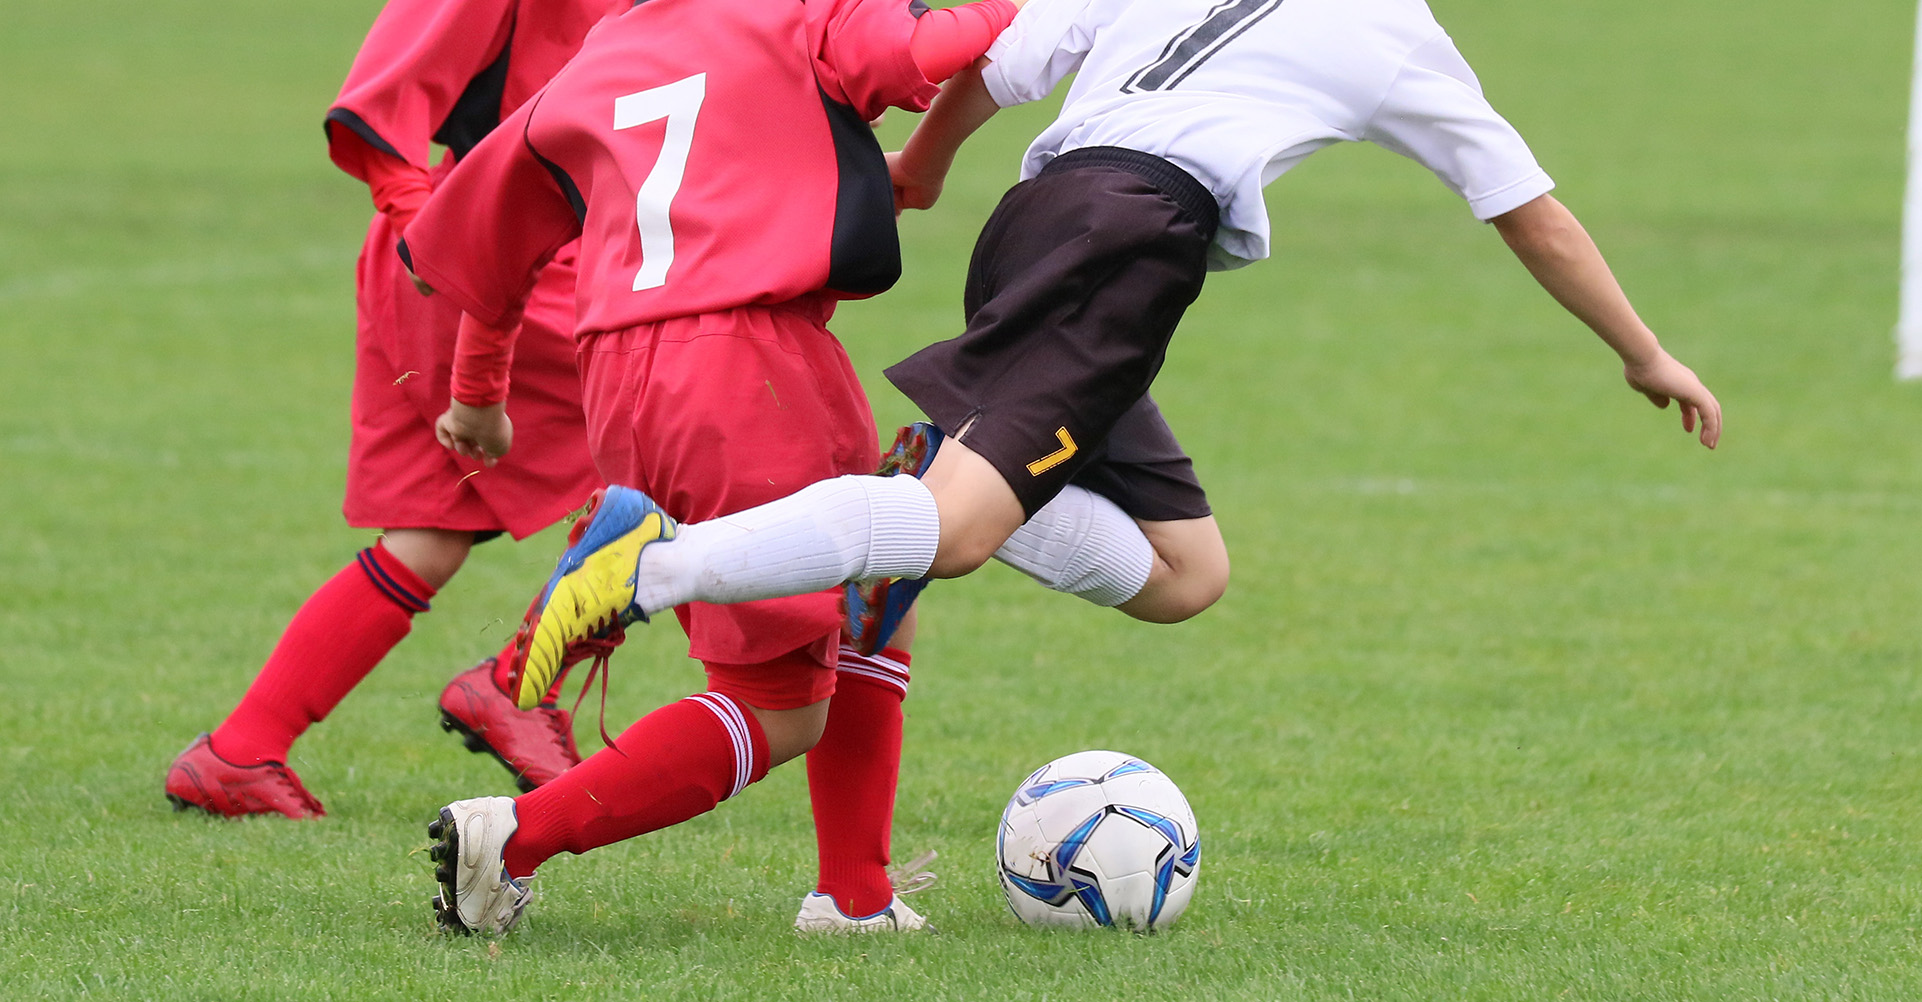 Sport, Football, Rugby Injuries - Foul, Two Footed Tackle - No Win, No Fee / Accident & Personal Injury Solicitors / Accident Claims UK